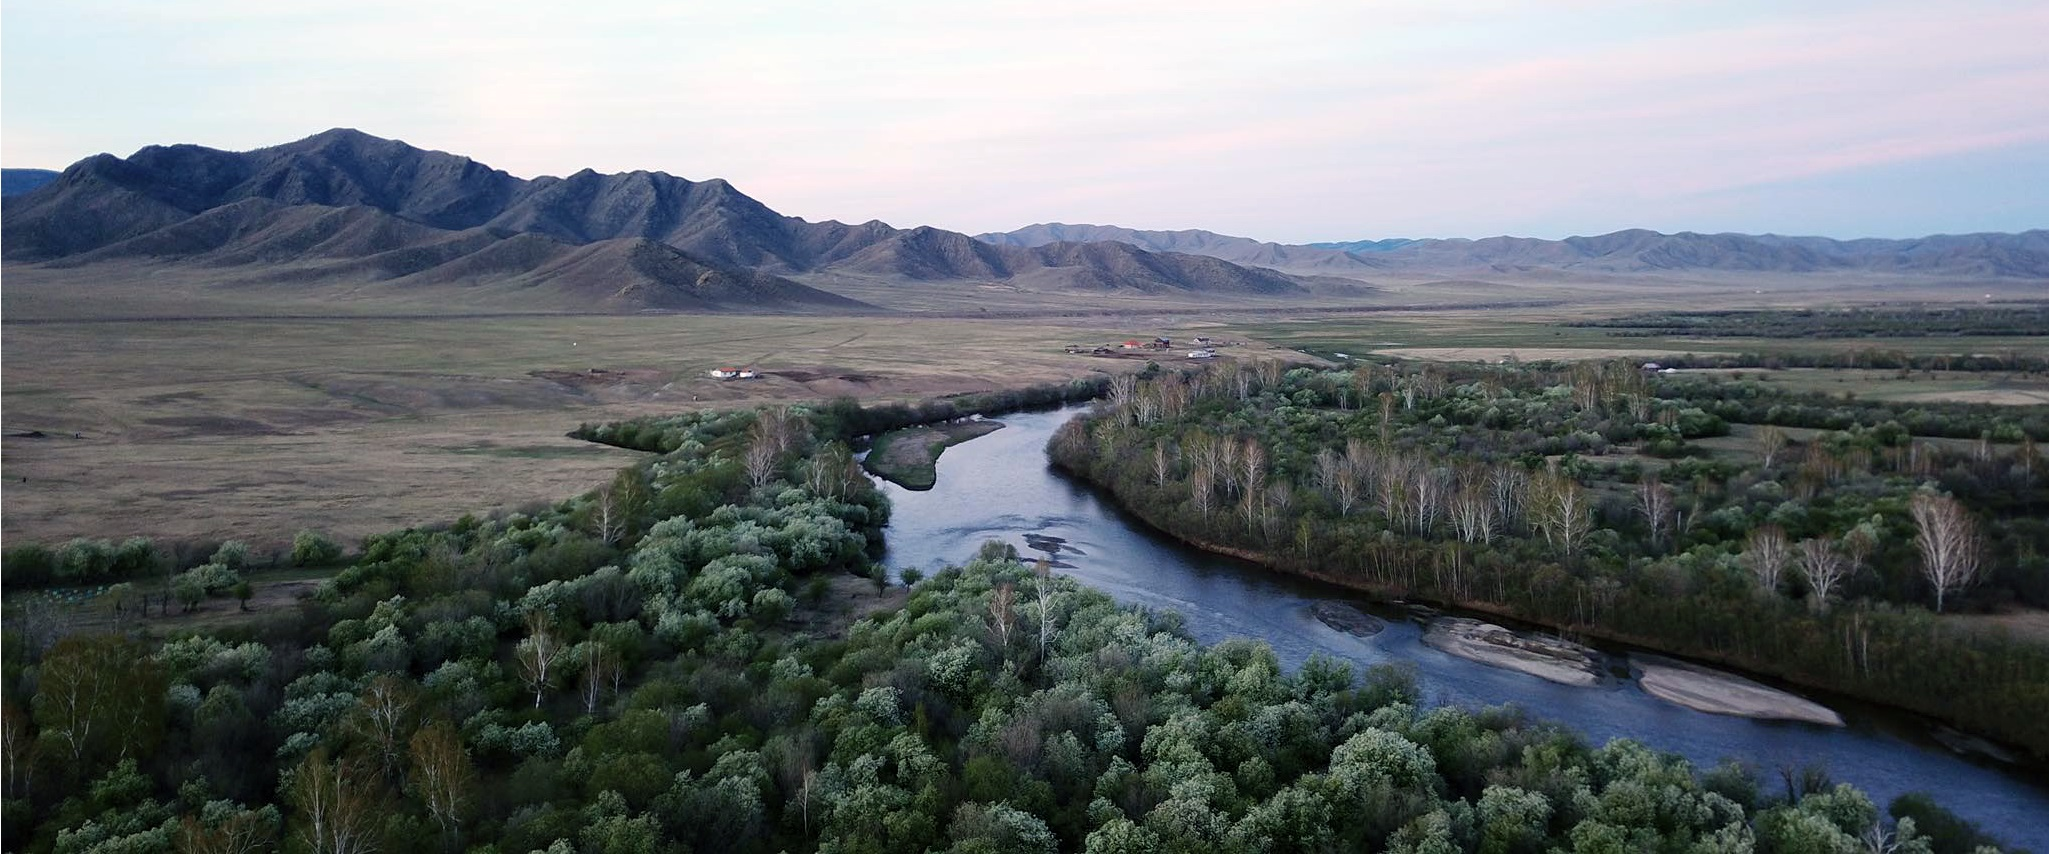 Explore the beauty and serenity of Mongolia